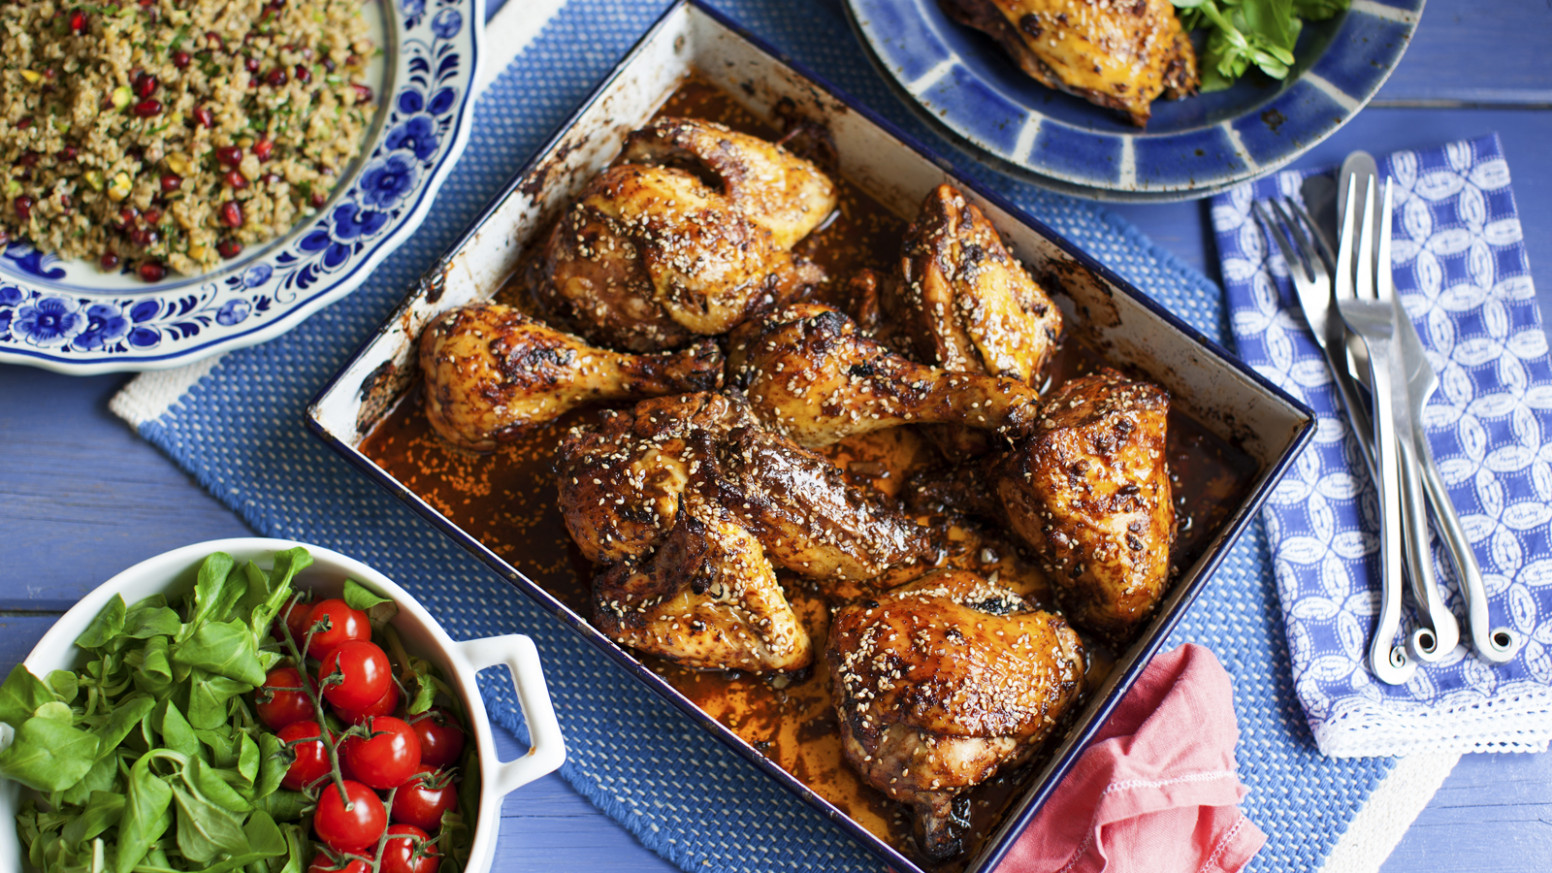 Oven Roasted Chicken With Sumac And Pomegranate Molasses - Chicken Recipes Roasted